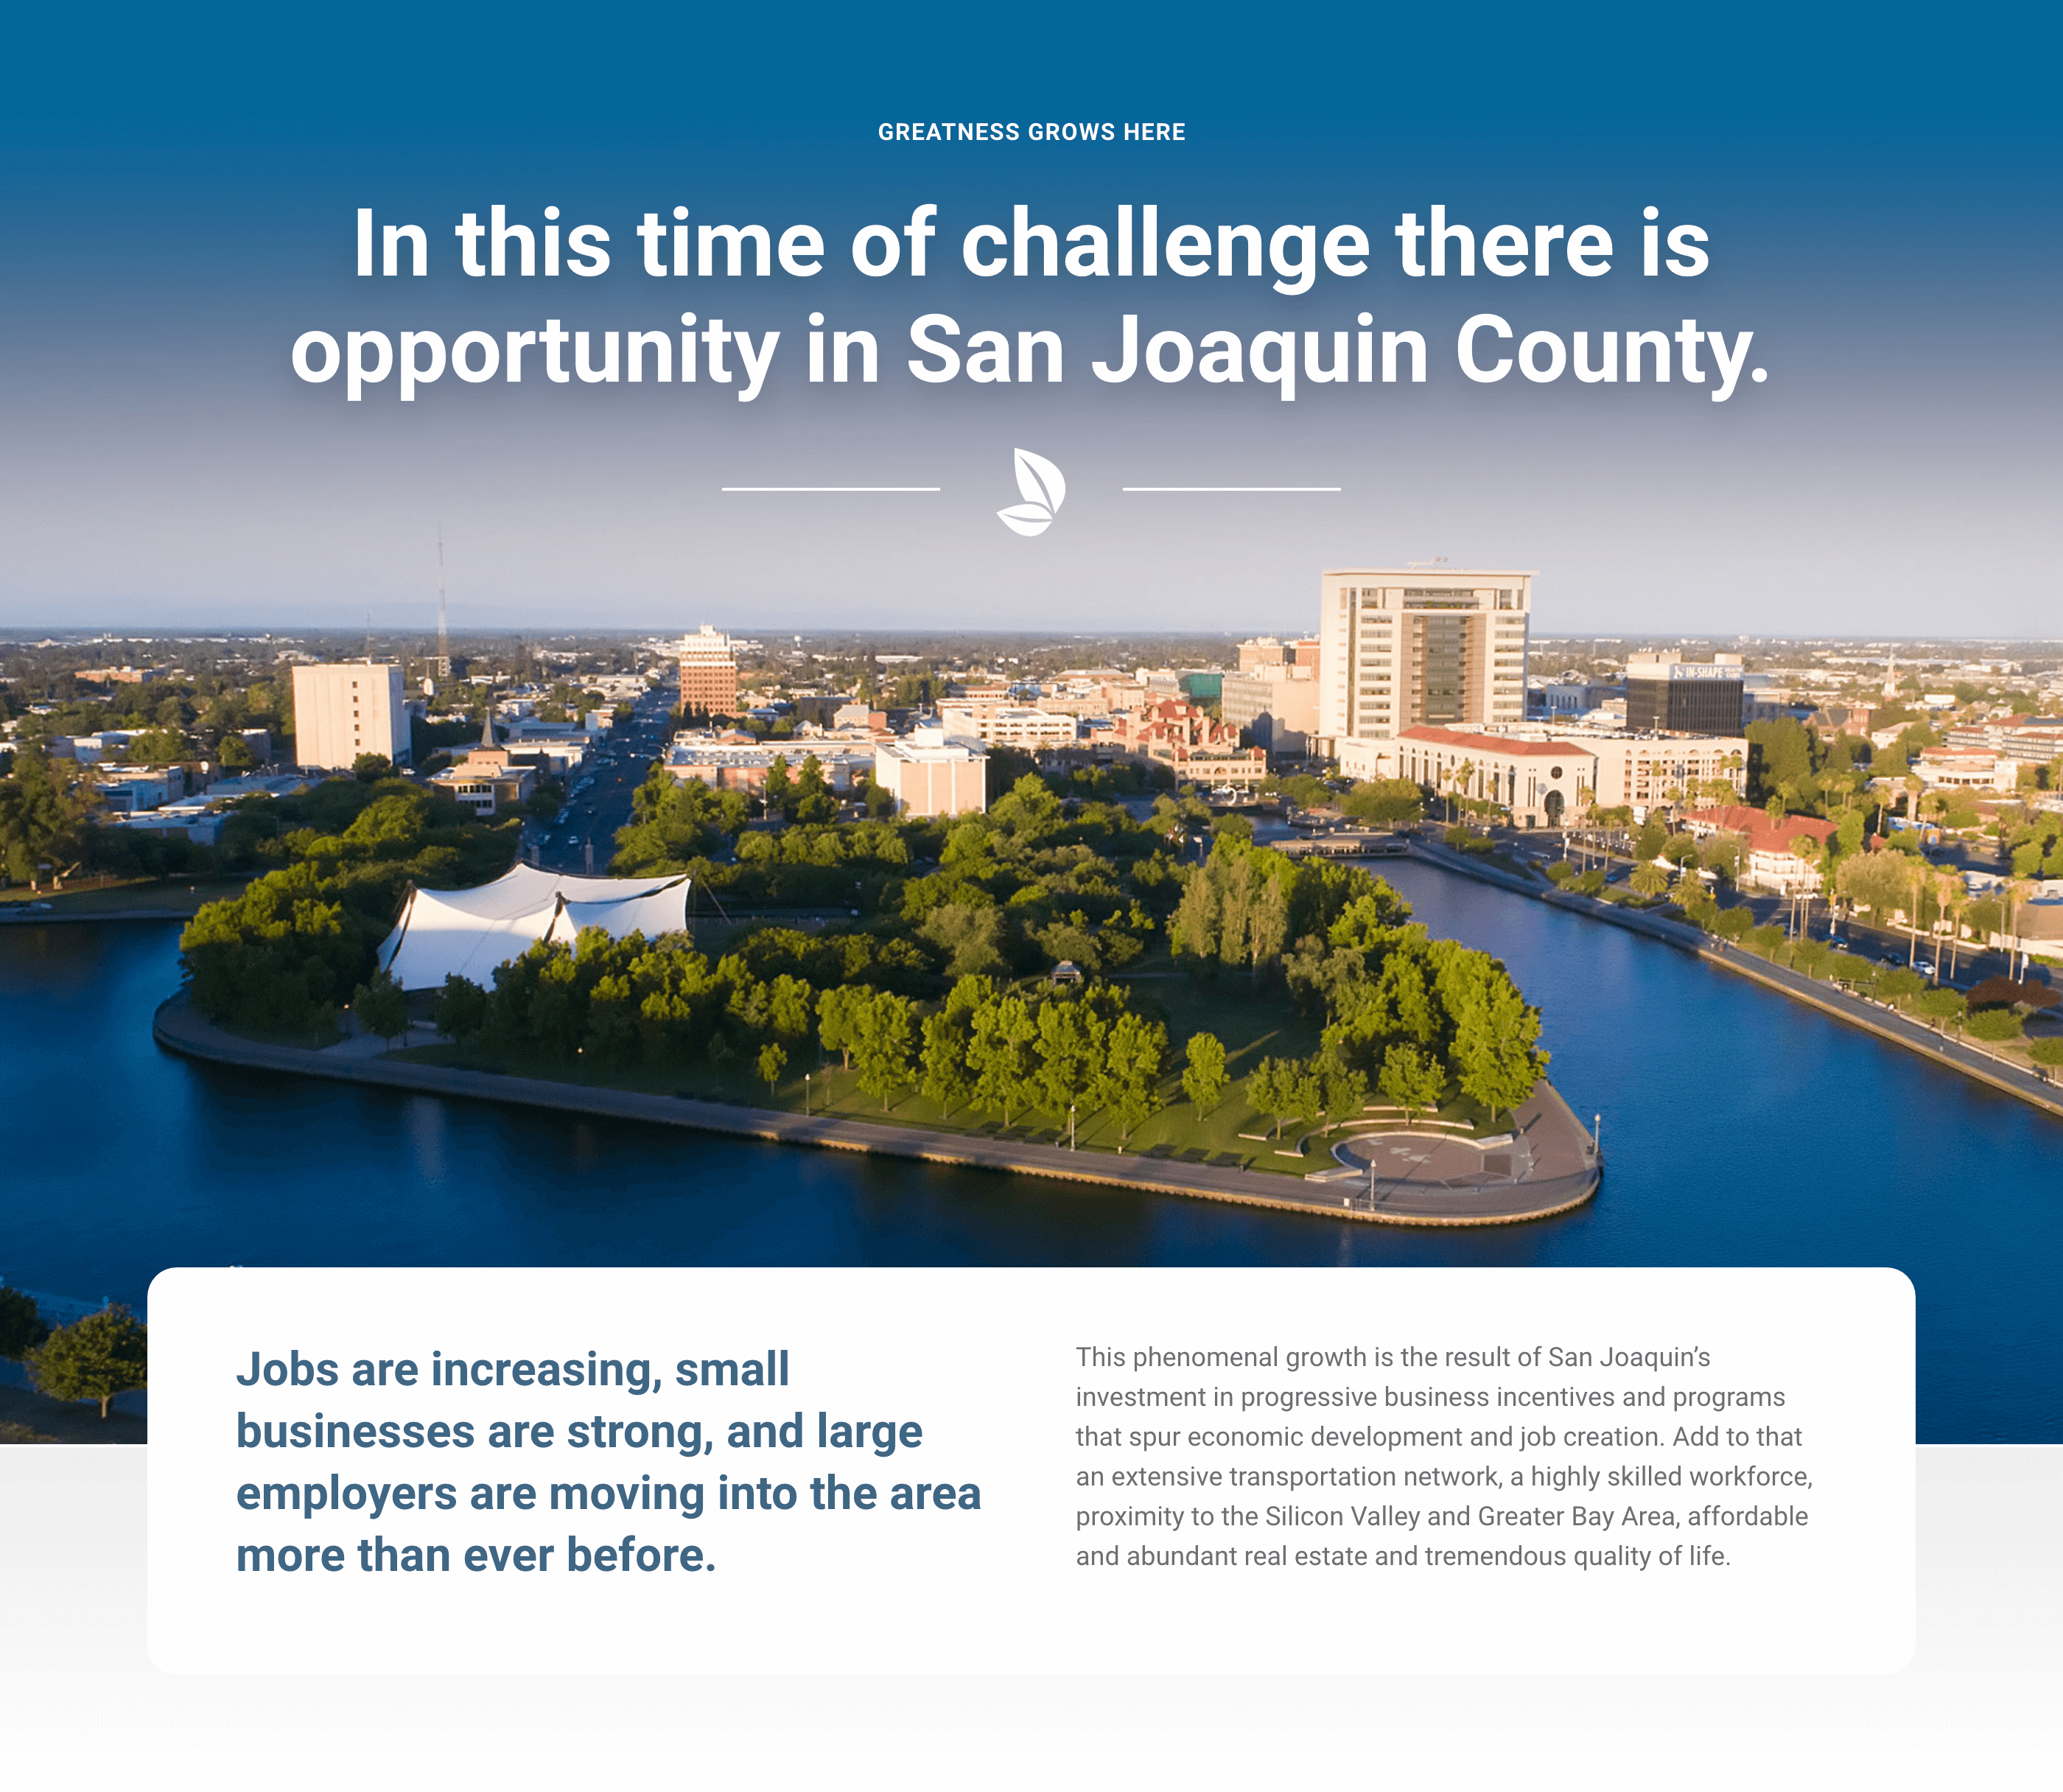 Art direction for the San Joaquin website homepage